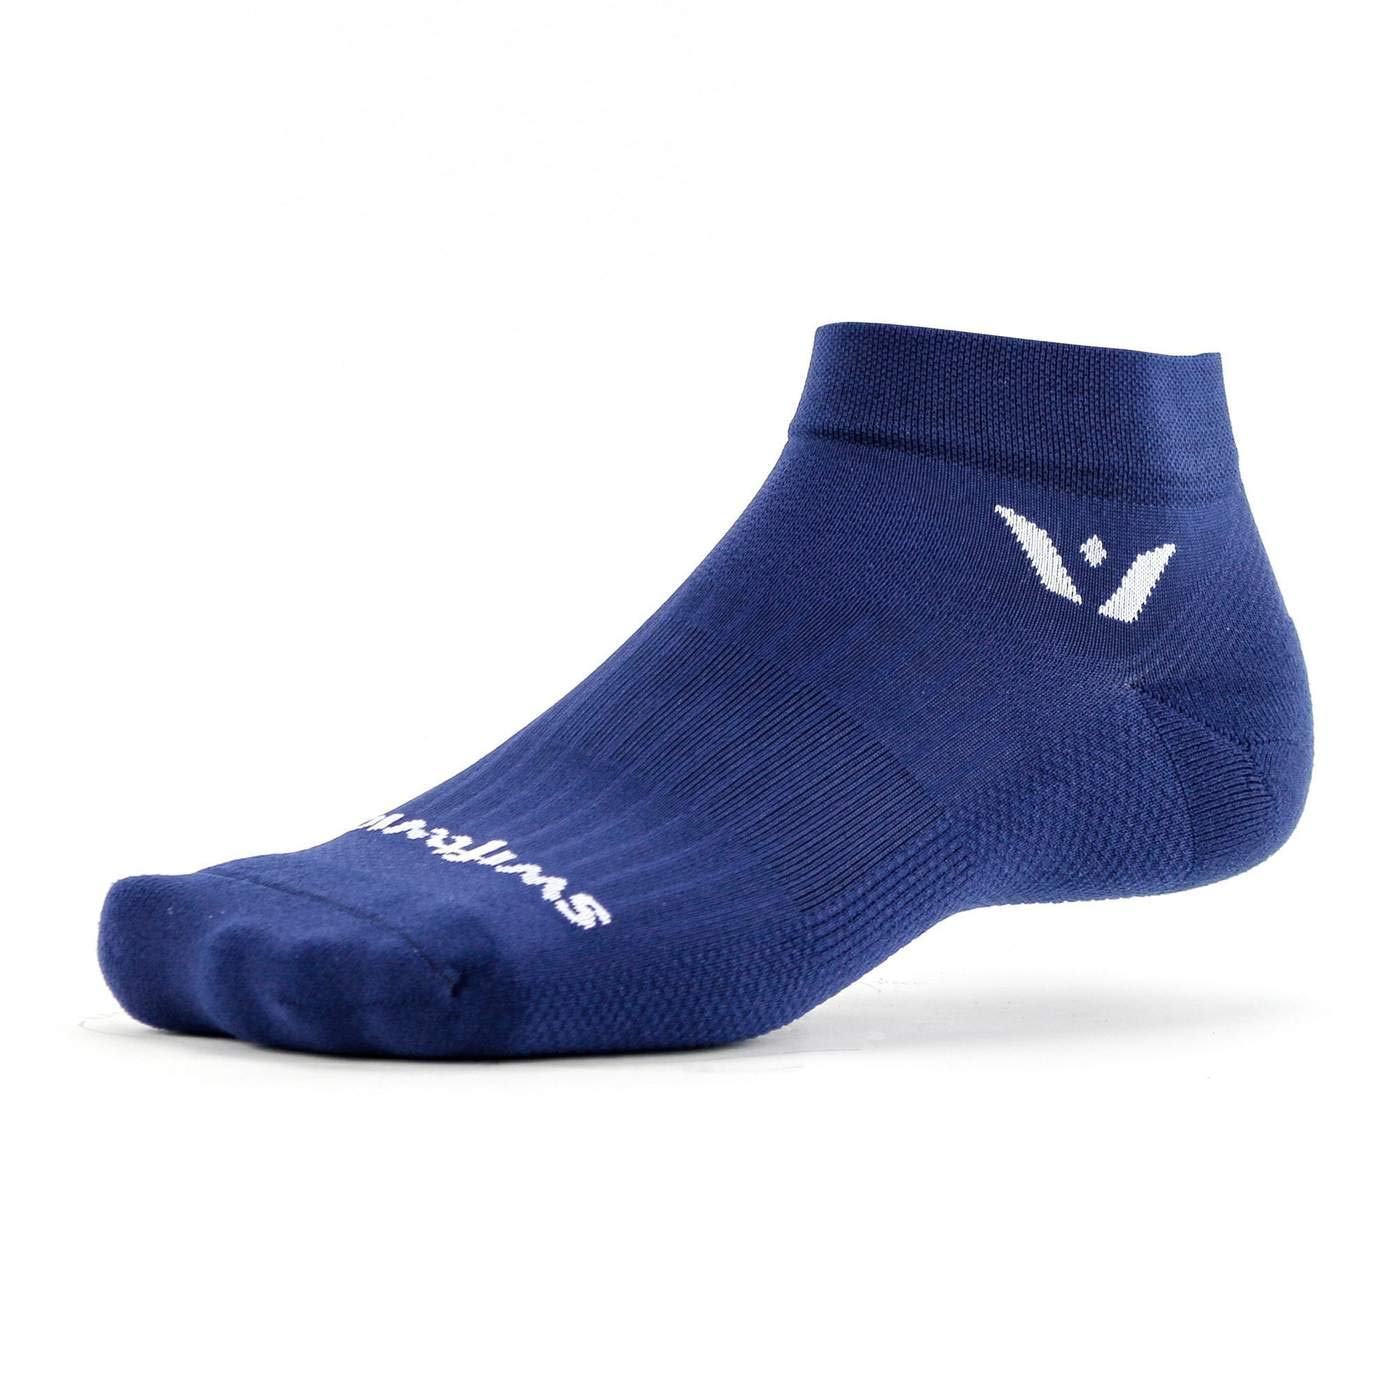 Swiftwick- Aspire ONE Firm Compression Ankle Socks Socks Built for Running /& Cycling Fast Drying